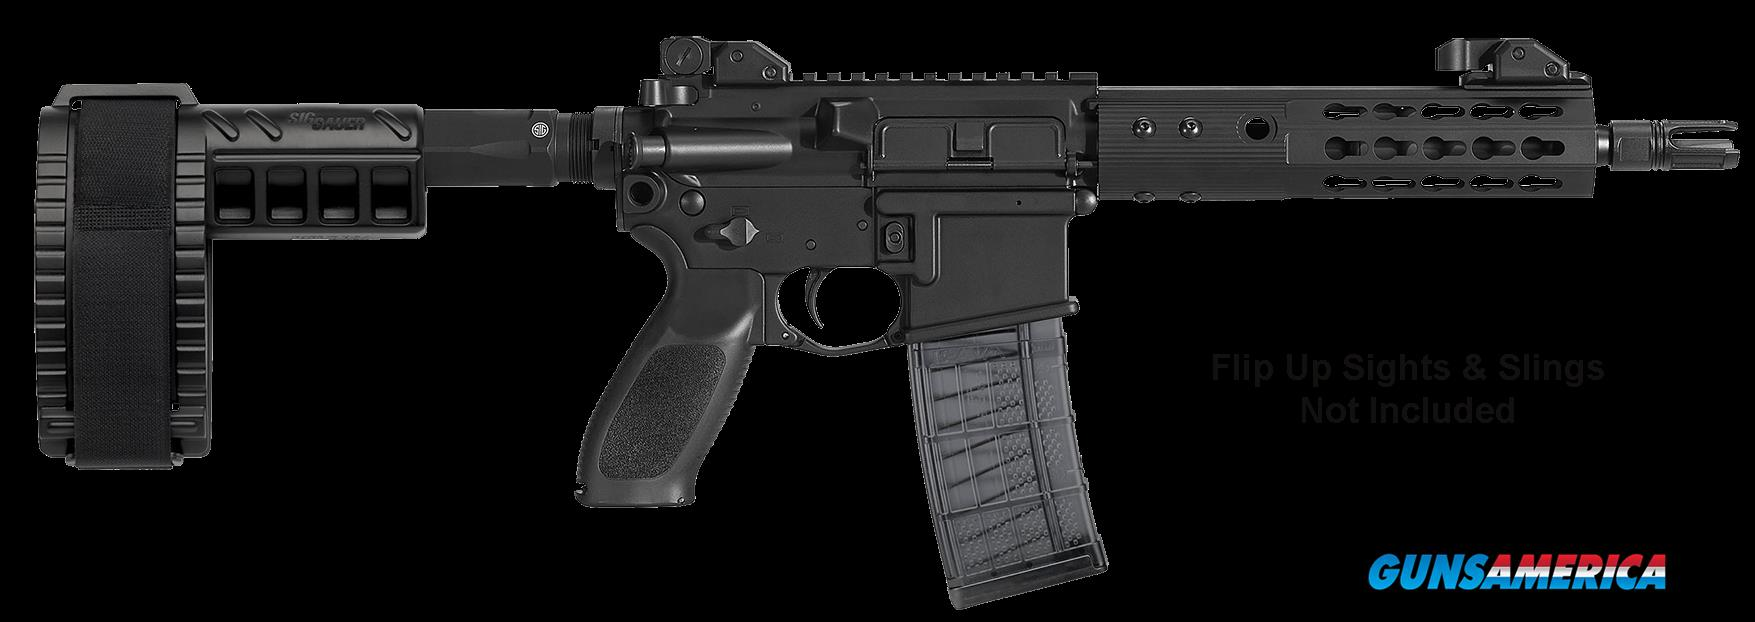 "Sig Sauer PM400300B9BE PM400 Elite AR Pistol Semi-Automatic 300 AAC Blackout/Whisper (7.62x35mm) 9""  Guns > Rifles > Sig - Sauer/Sigarms Rifles"